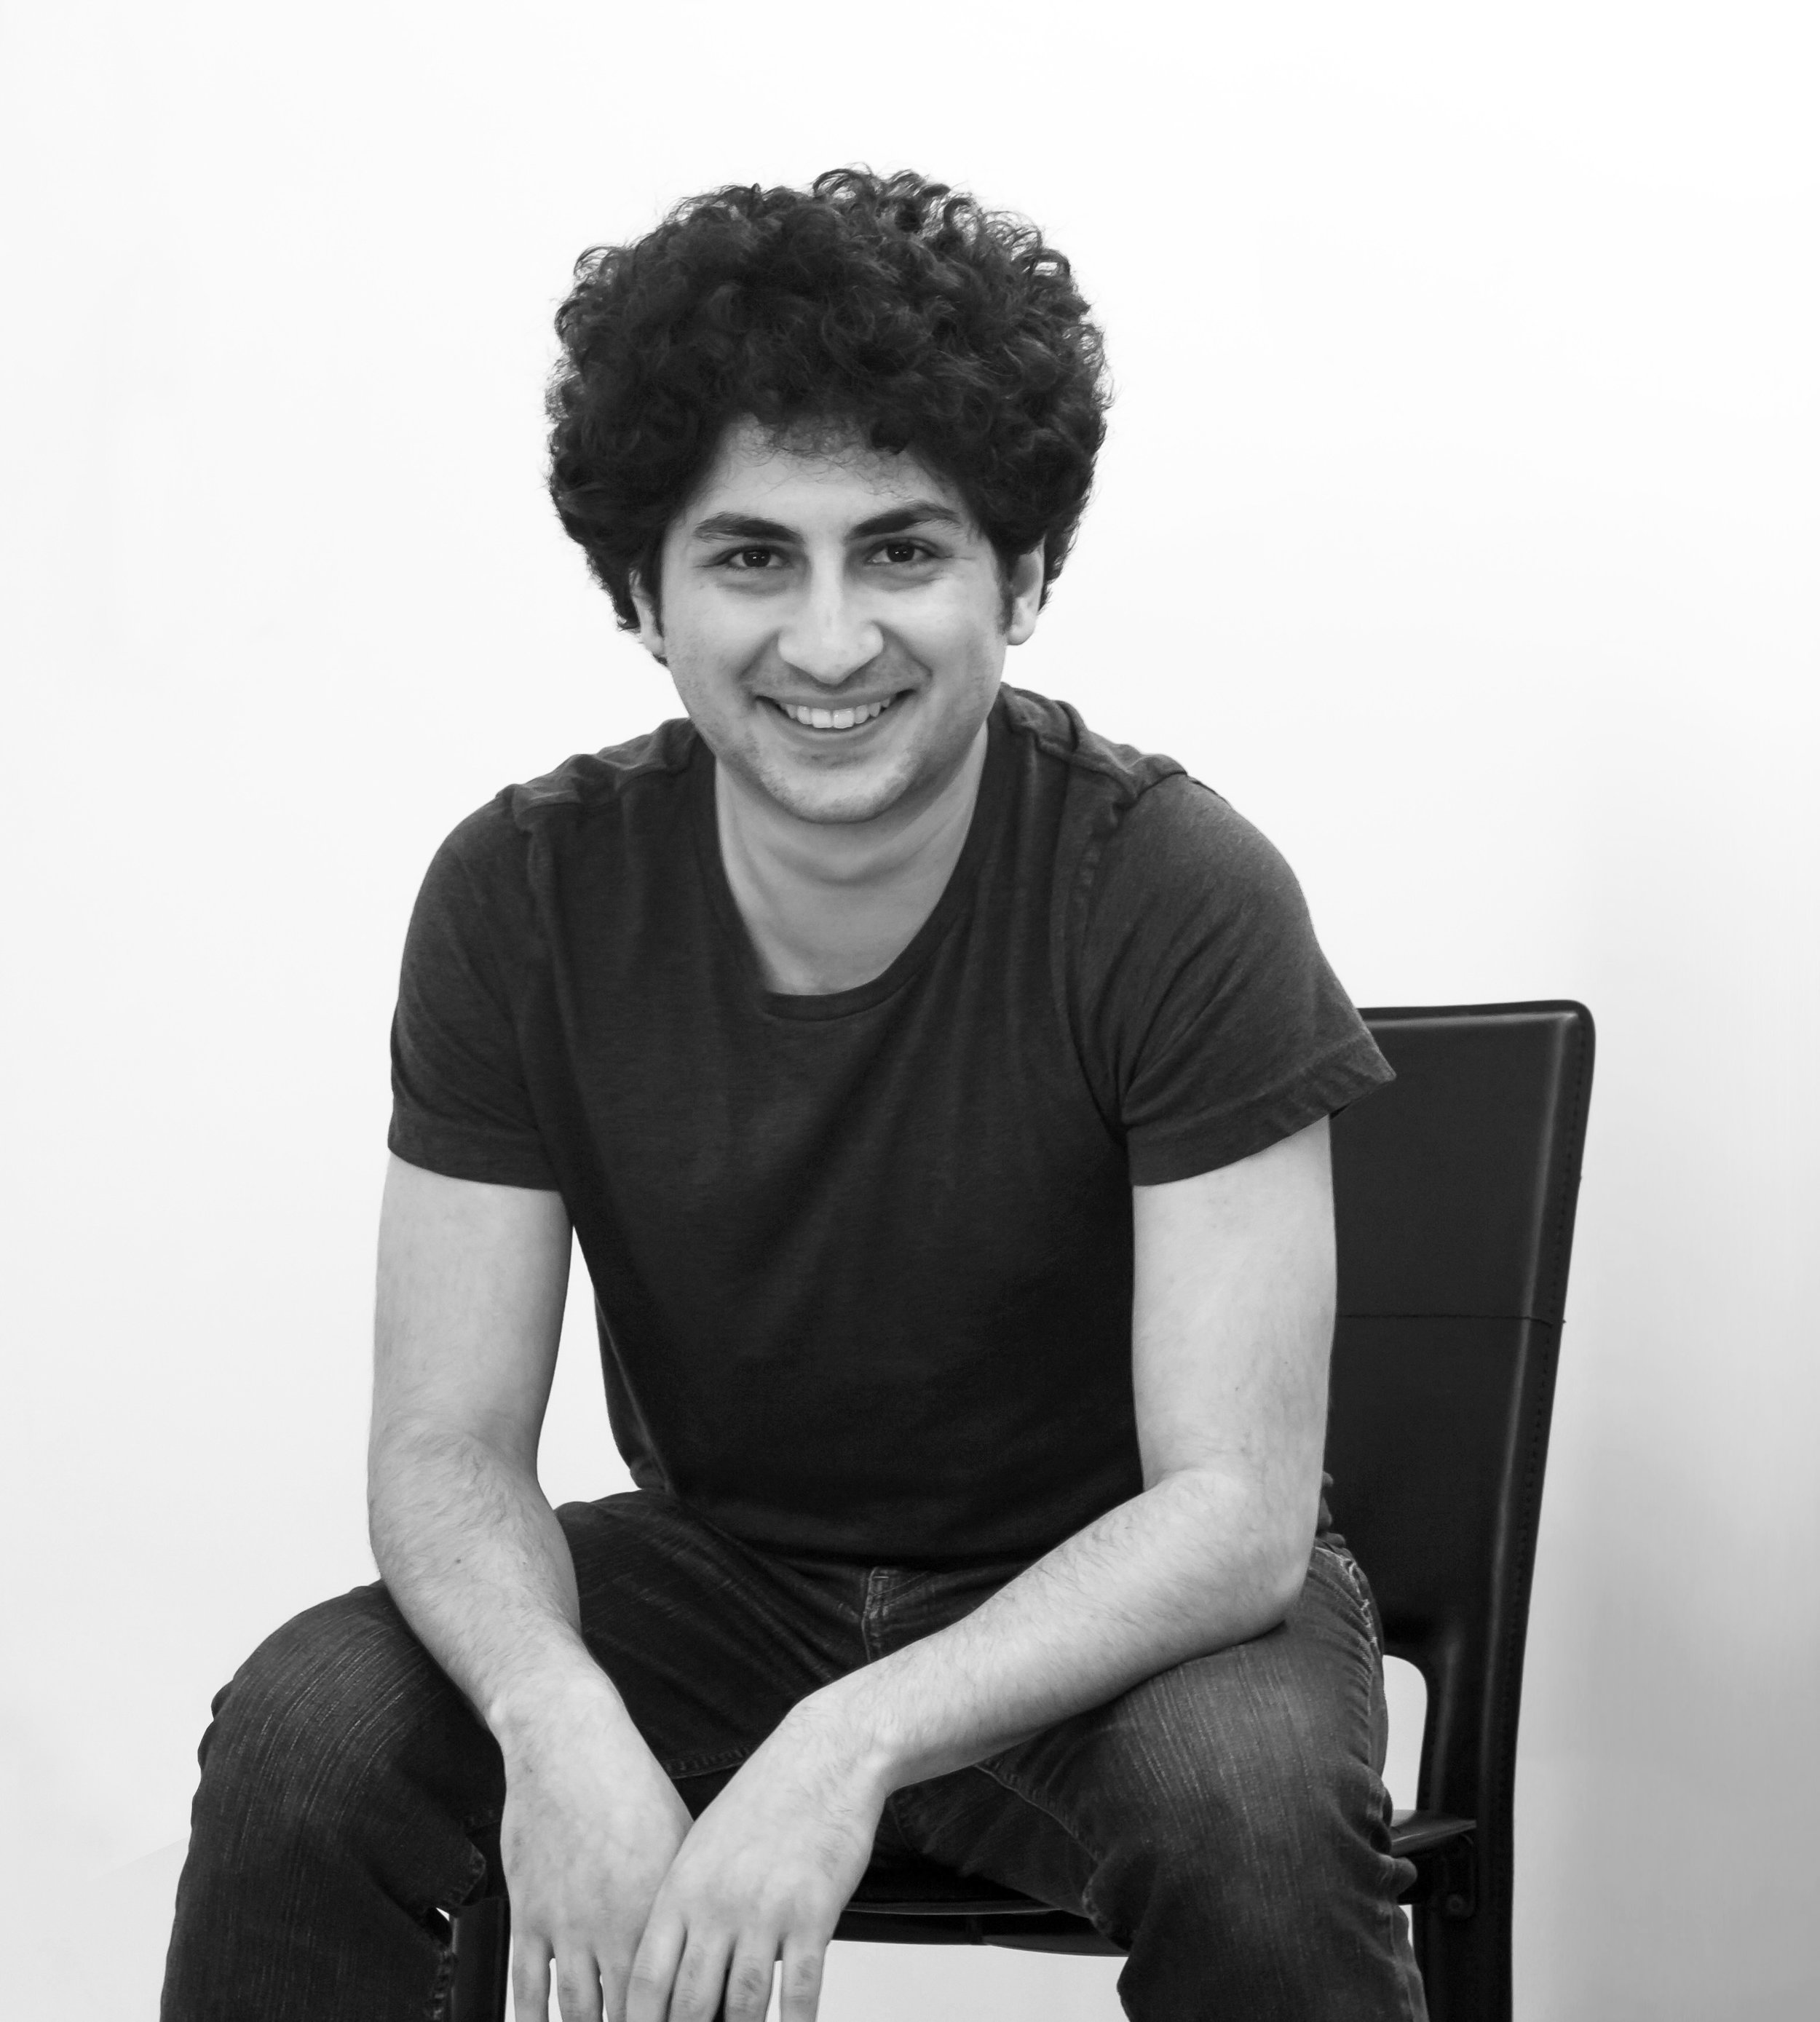 ELI BENSUSAN   Eli is an independent designer with a degree of Master of Design in Designed Objects from School of the Art Institute of Chicago(2015) and Bachelors of Science in Industrial Product Design from Istanbul Technical University(2013). He has founded Neferka   LLC, a jewelry brand in Chicago in 2015. Eli Bensusan aims to create poetic instants that lead to transformative experiences, and jewelry is one of many fields that he is interested in.